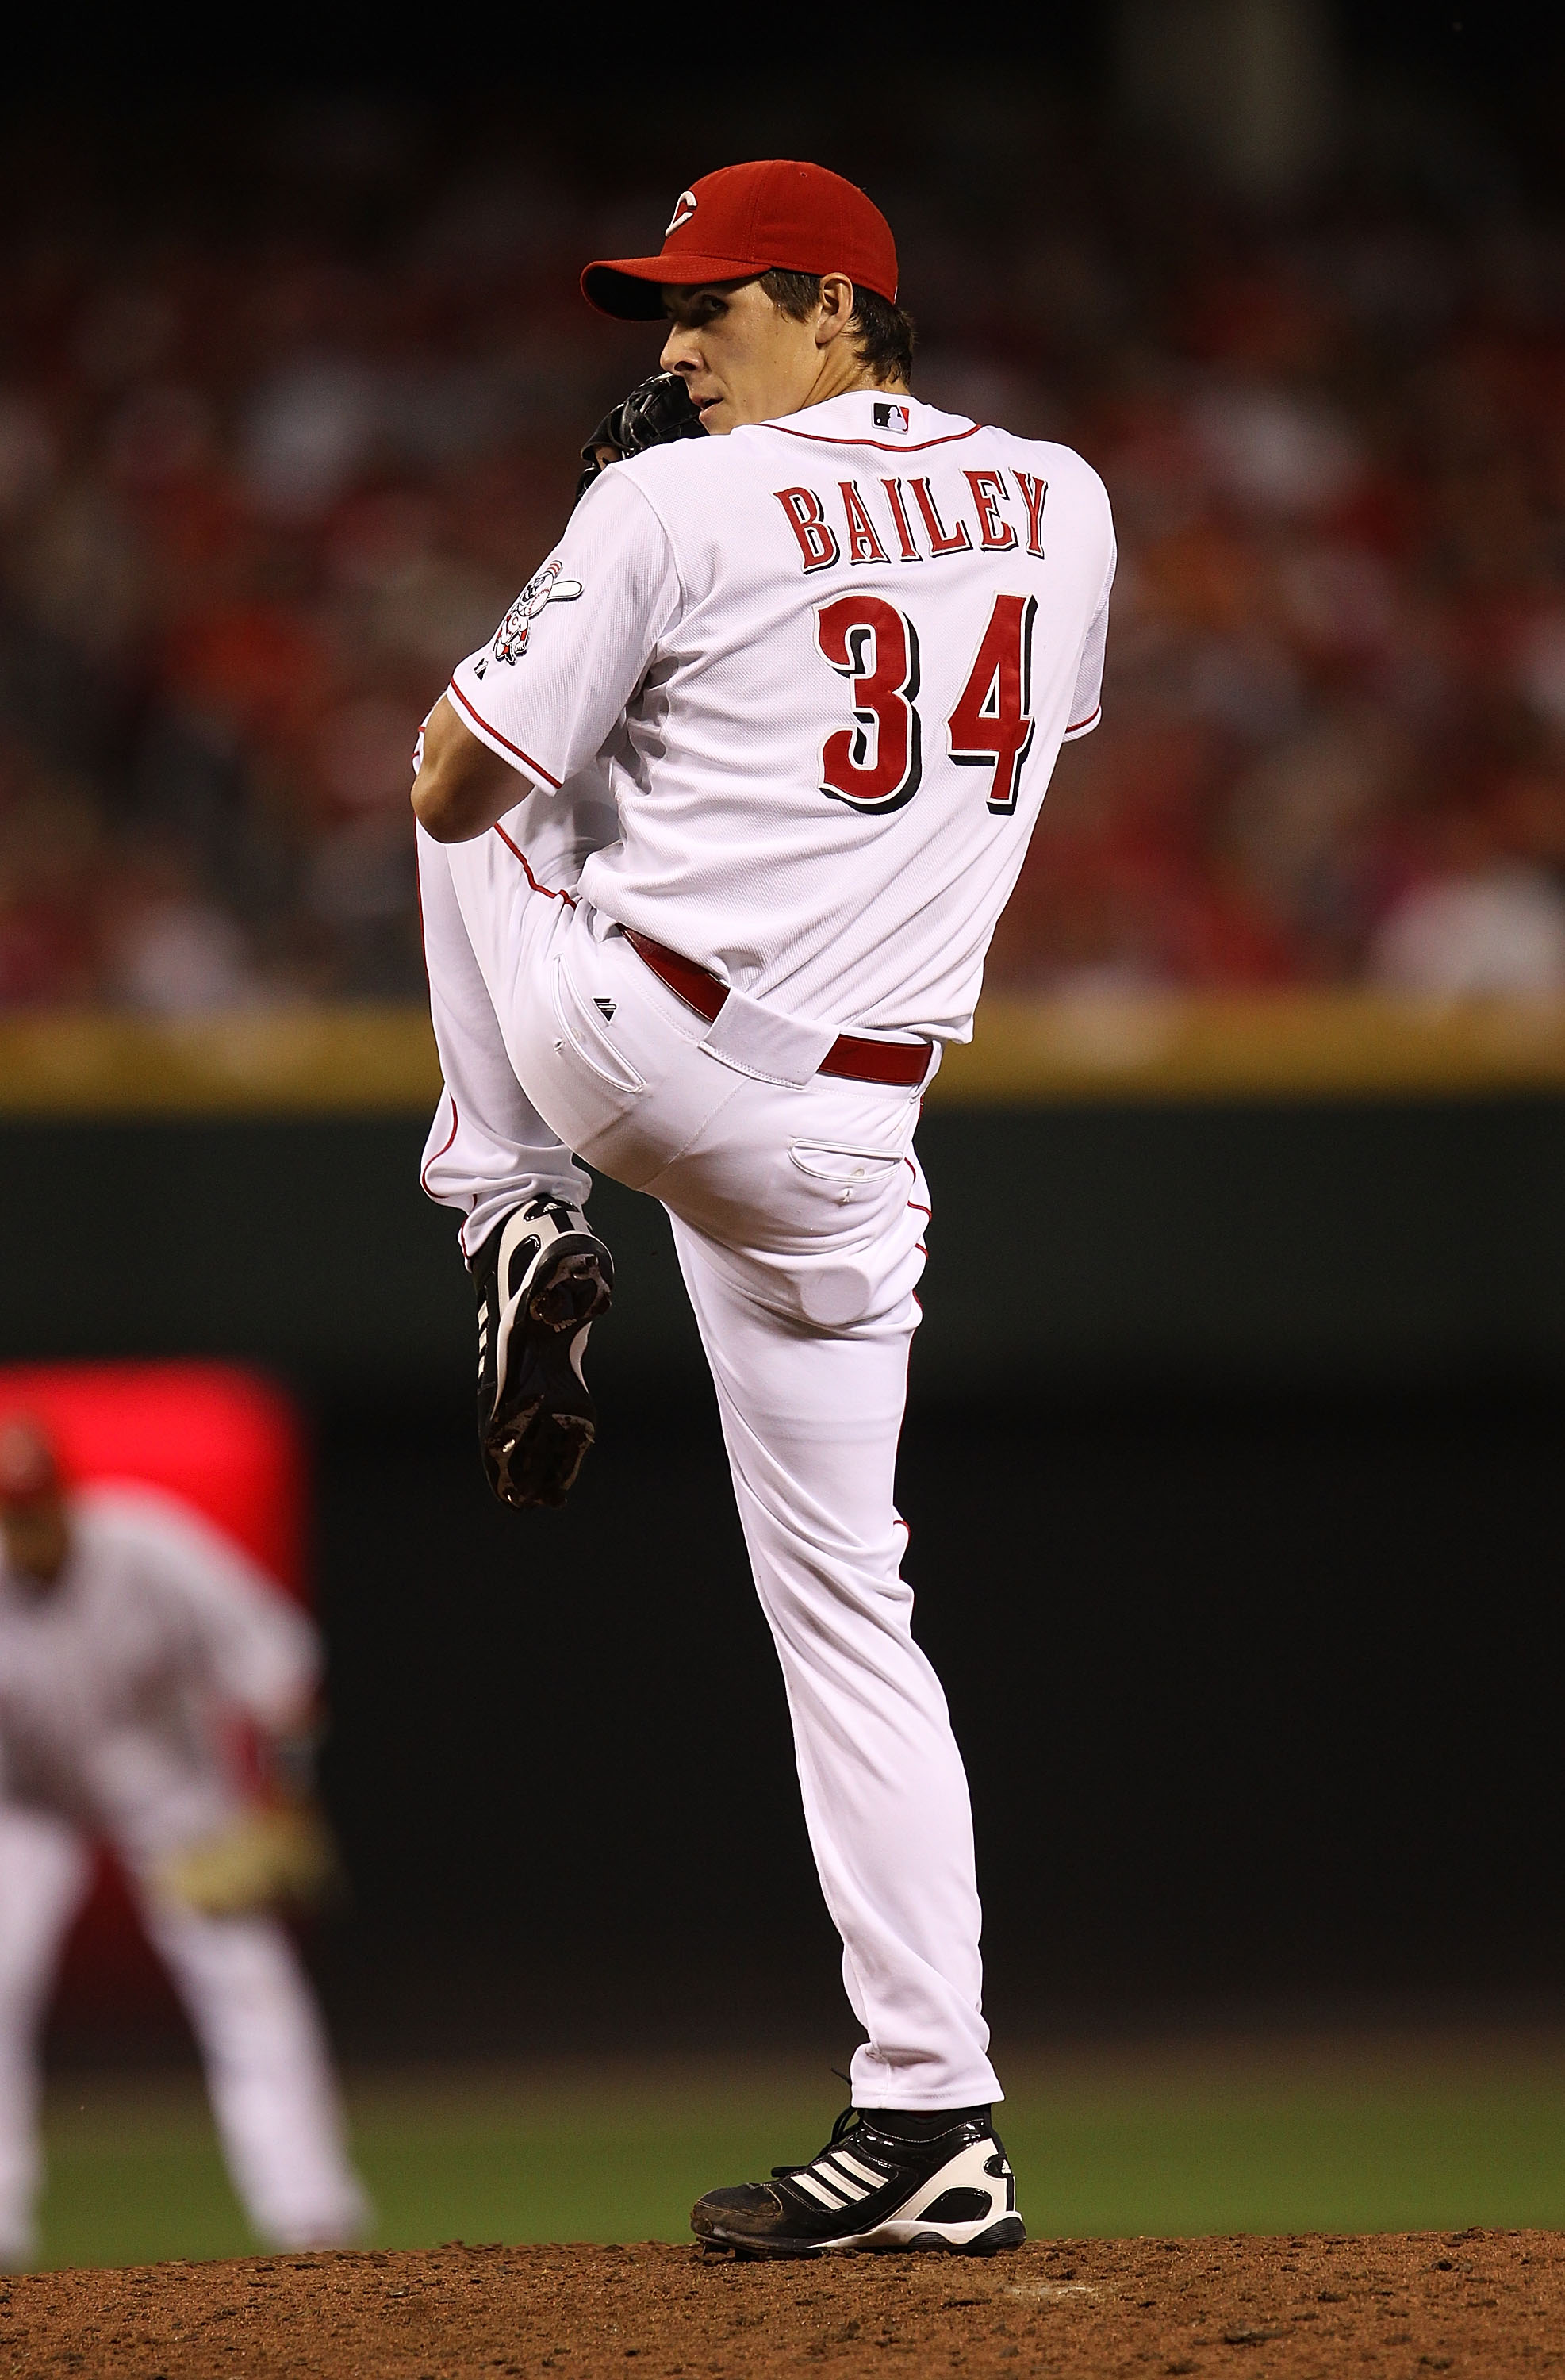 CINCINNATI - OCTOBER 10: Homer Bailey #34 of the Cincinnati Reds pitches against the Philadelphia Phillies during game 3 of the NLDS at Great American Ball Park on October 10, 2010 in Cincinnati, Ohio. The Phillies defeated the Reds 2-0. (Photo by Jonatha